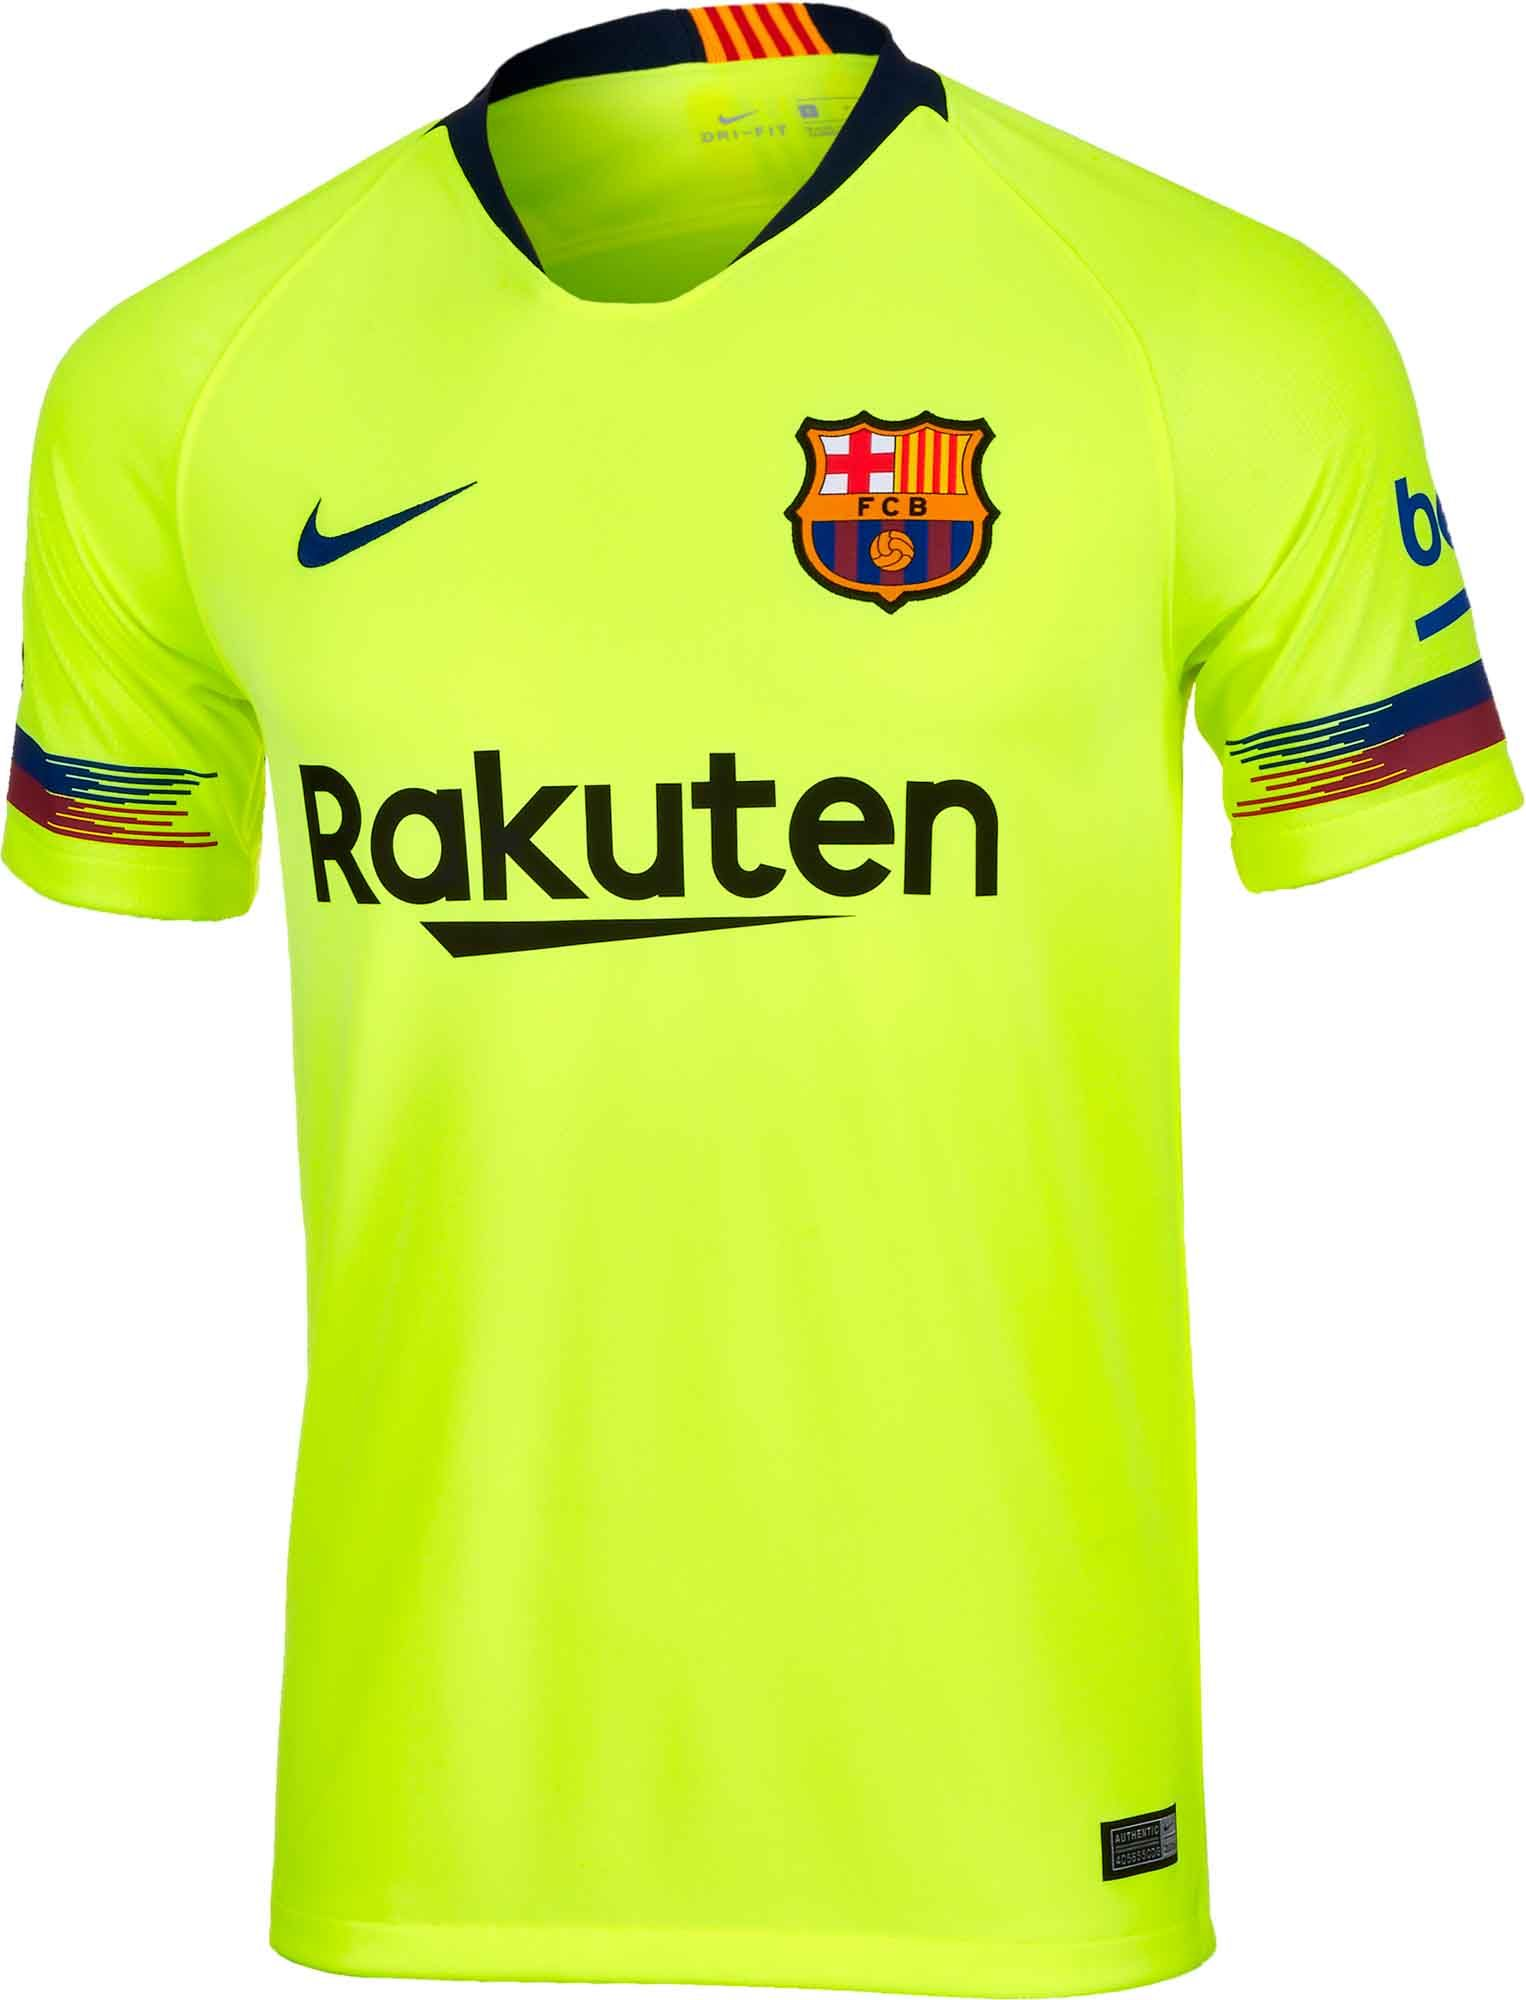 2018 19 Nike FC Barcelona Away Jersey. Buy it from SoccerPro. 3279eefc1b58a